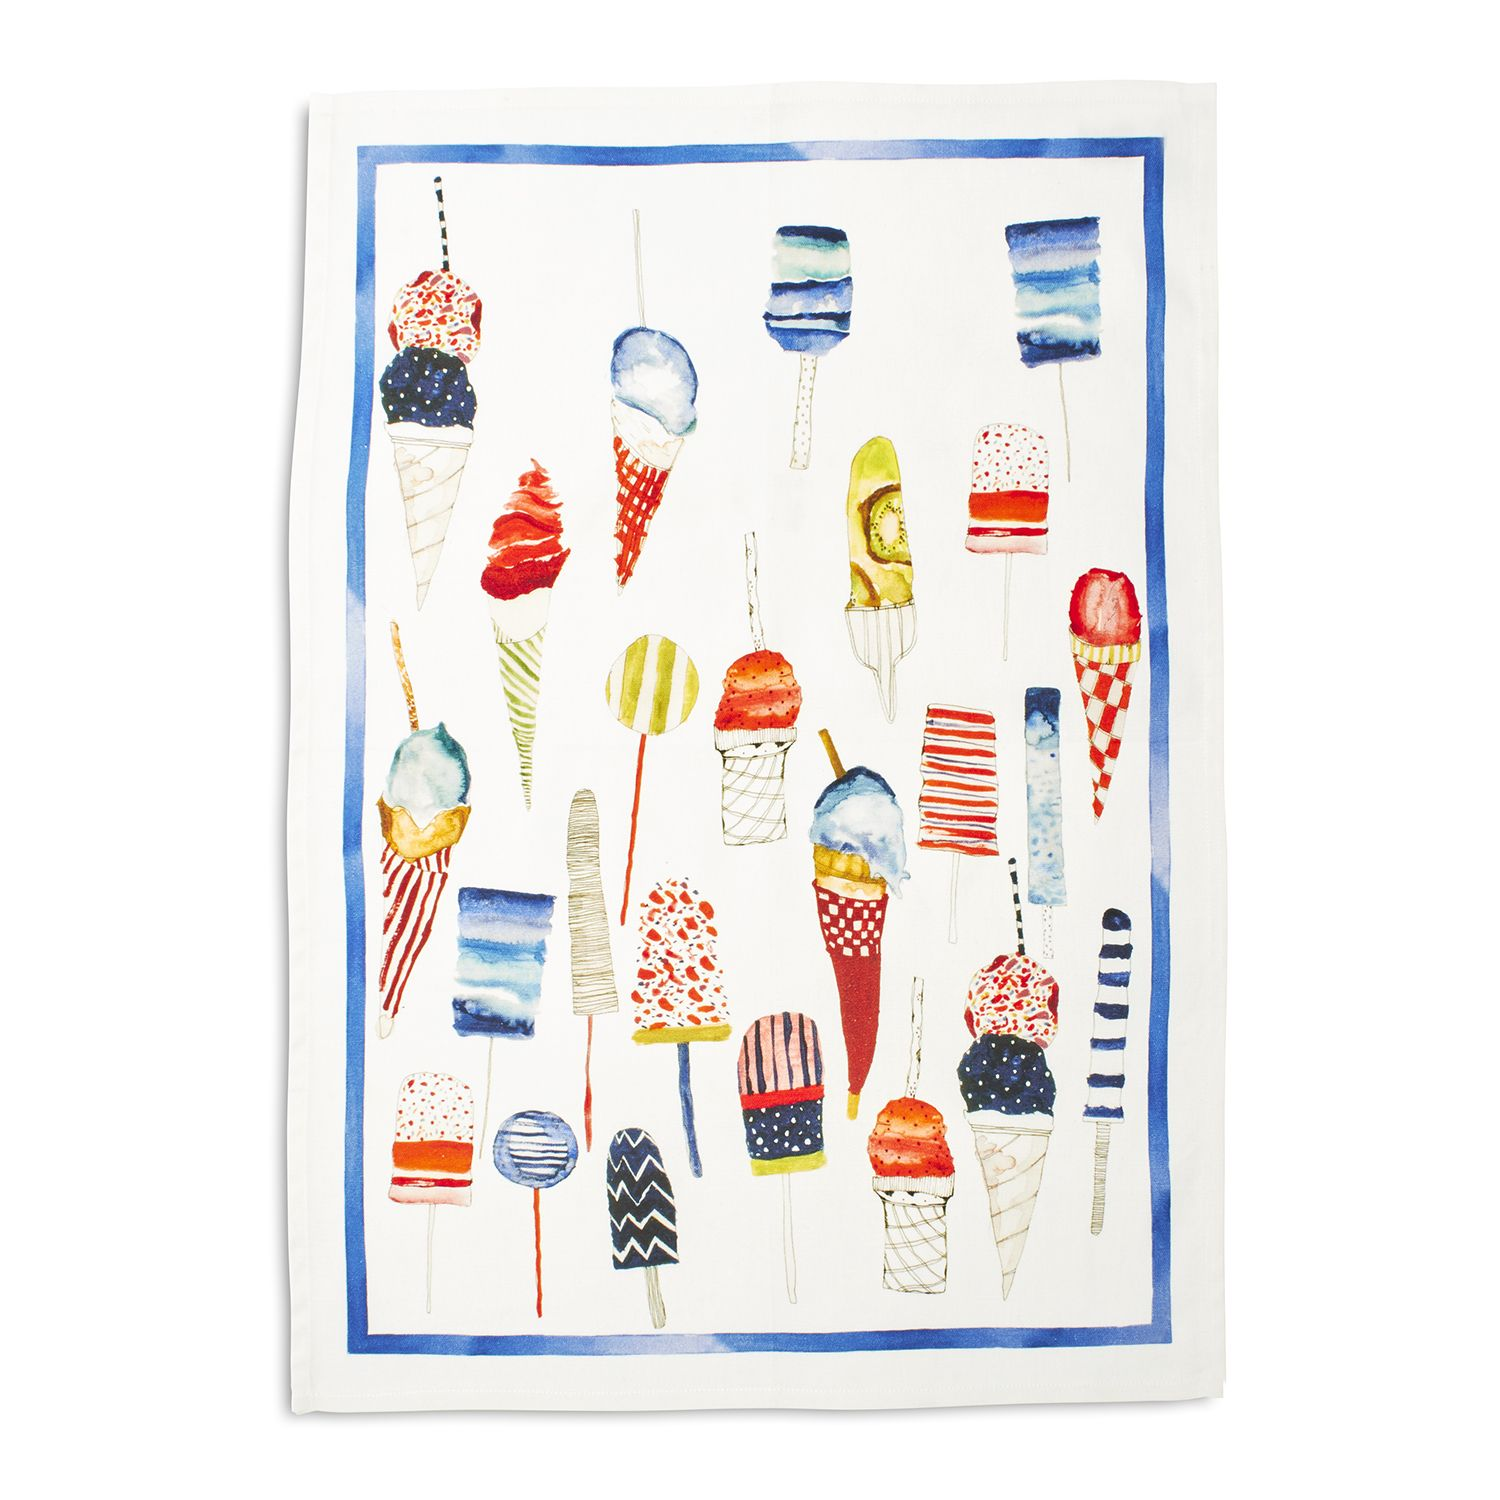 Shop Ice Cream Kitchen Towel And More From Sur La Table In 2020 Cream Kitchen Kitchen Towels Sur La Table